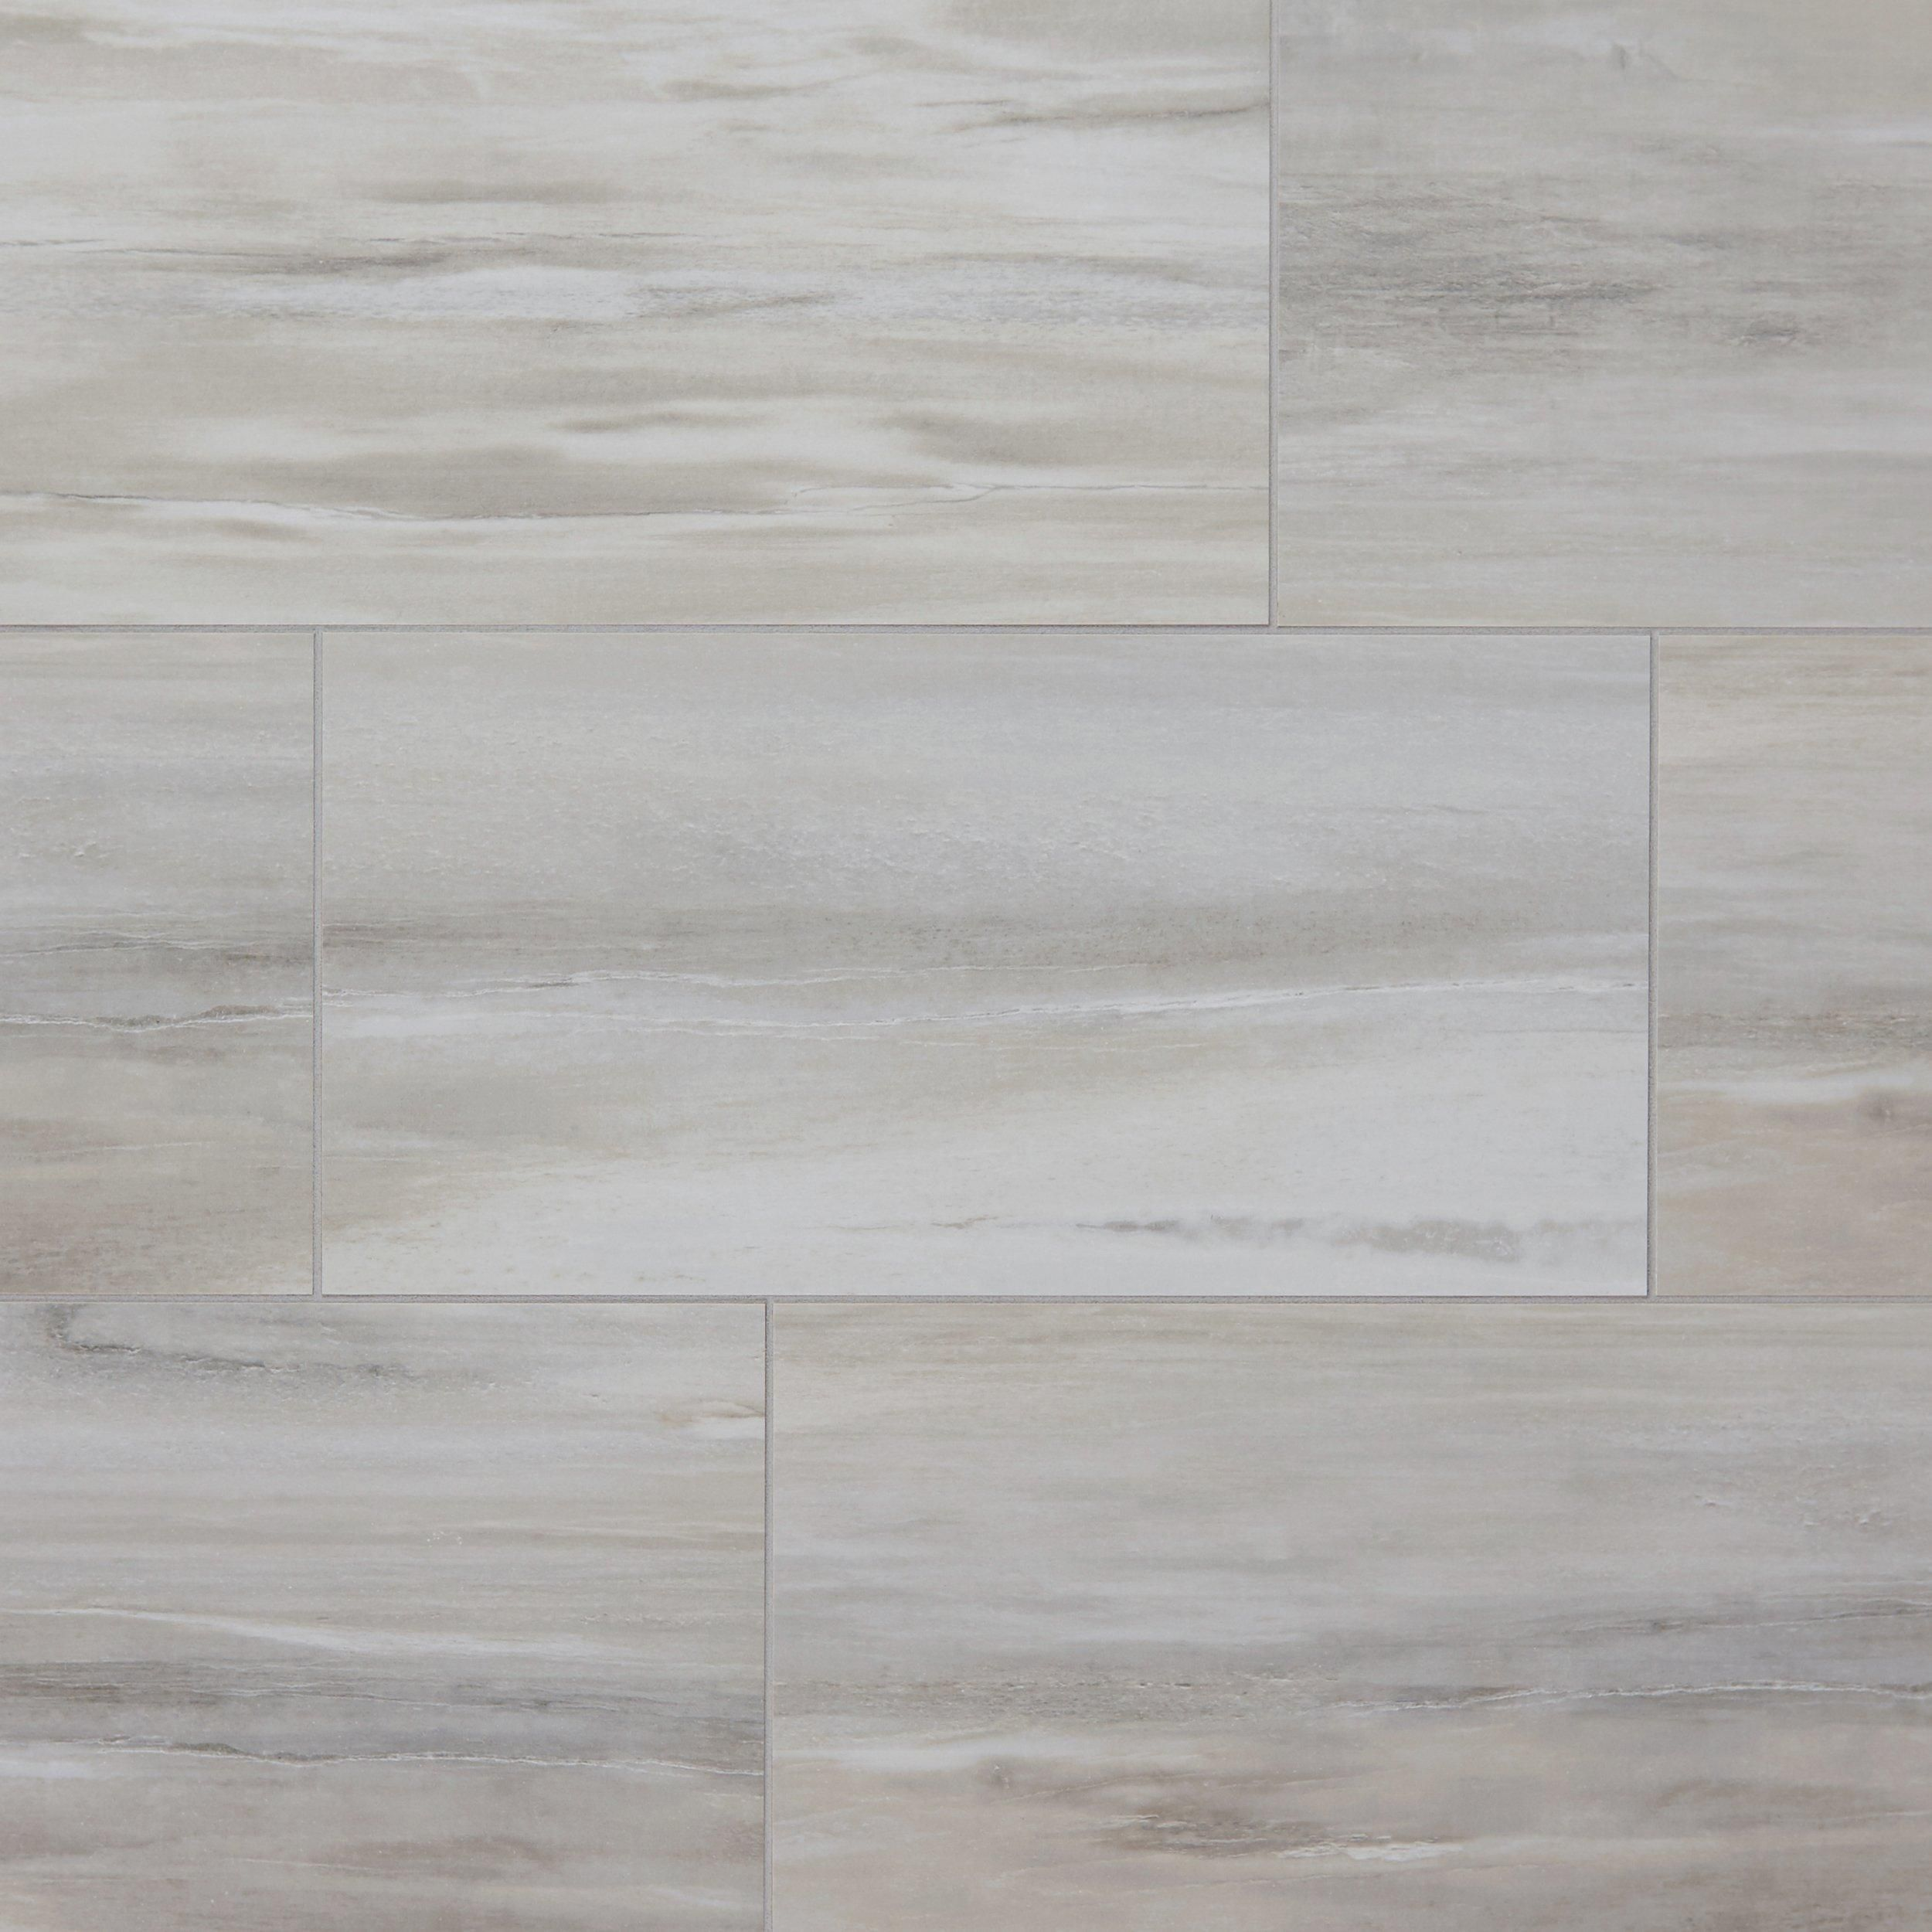 Solano Ivory Porcelain Tile Floor Decor Ivory Porcelain Tiles Porcelain Tile Porcelain Floor Tiles